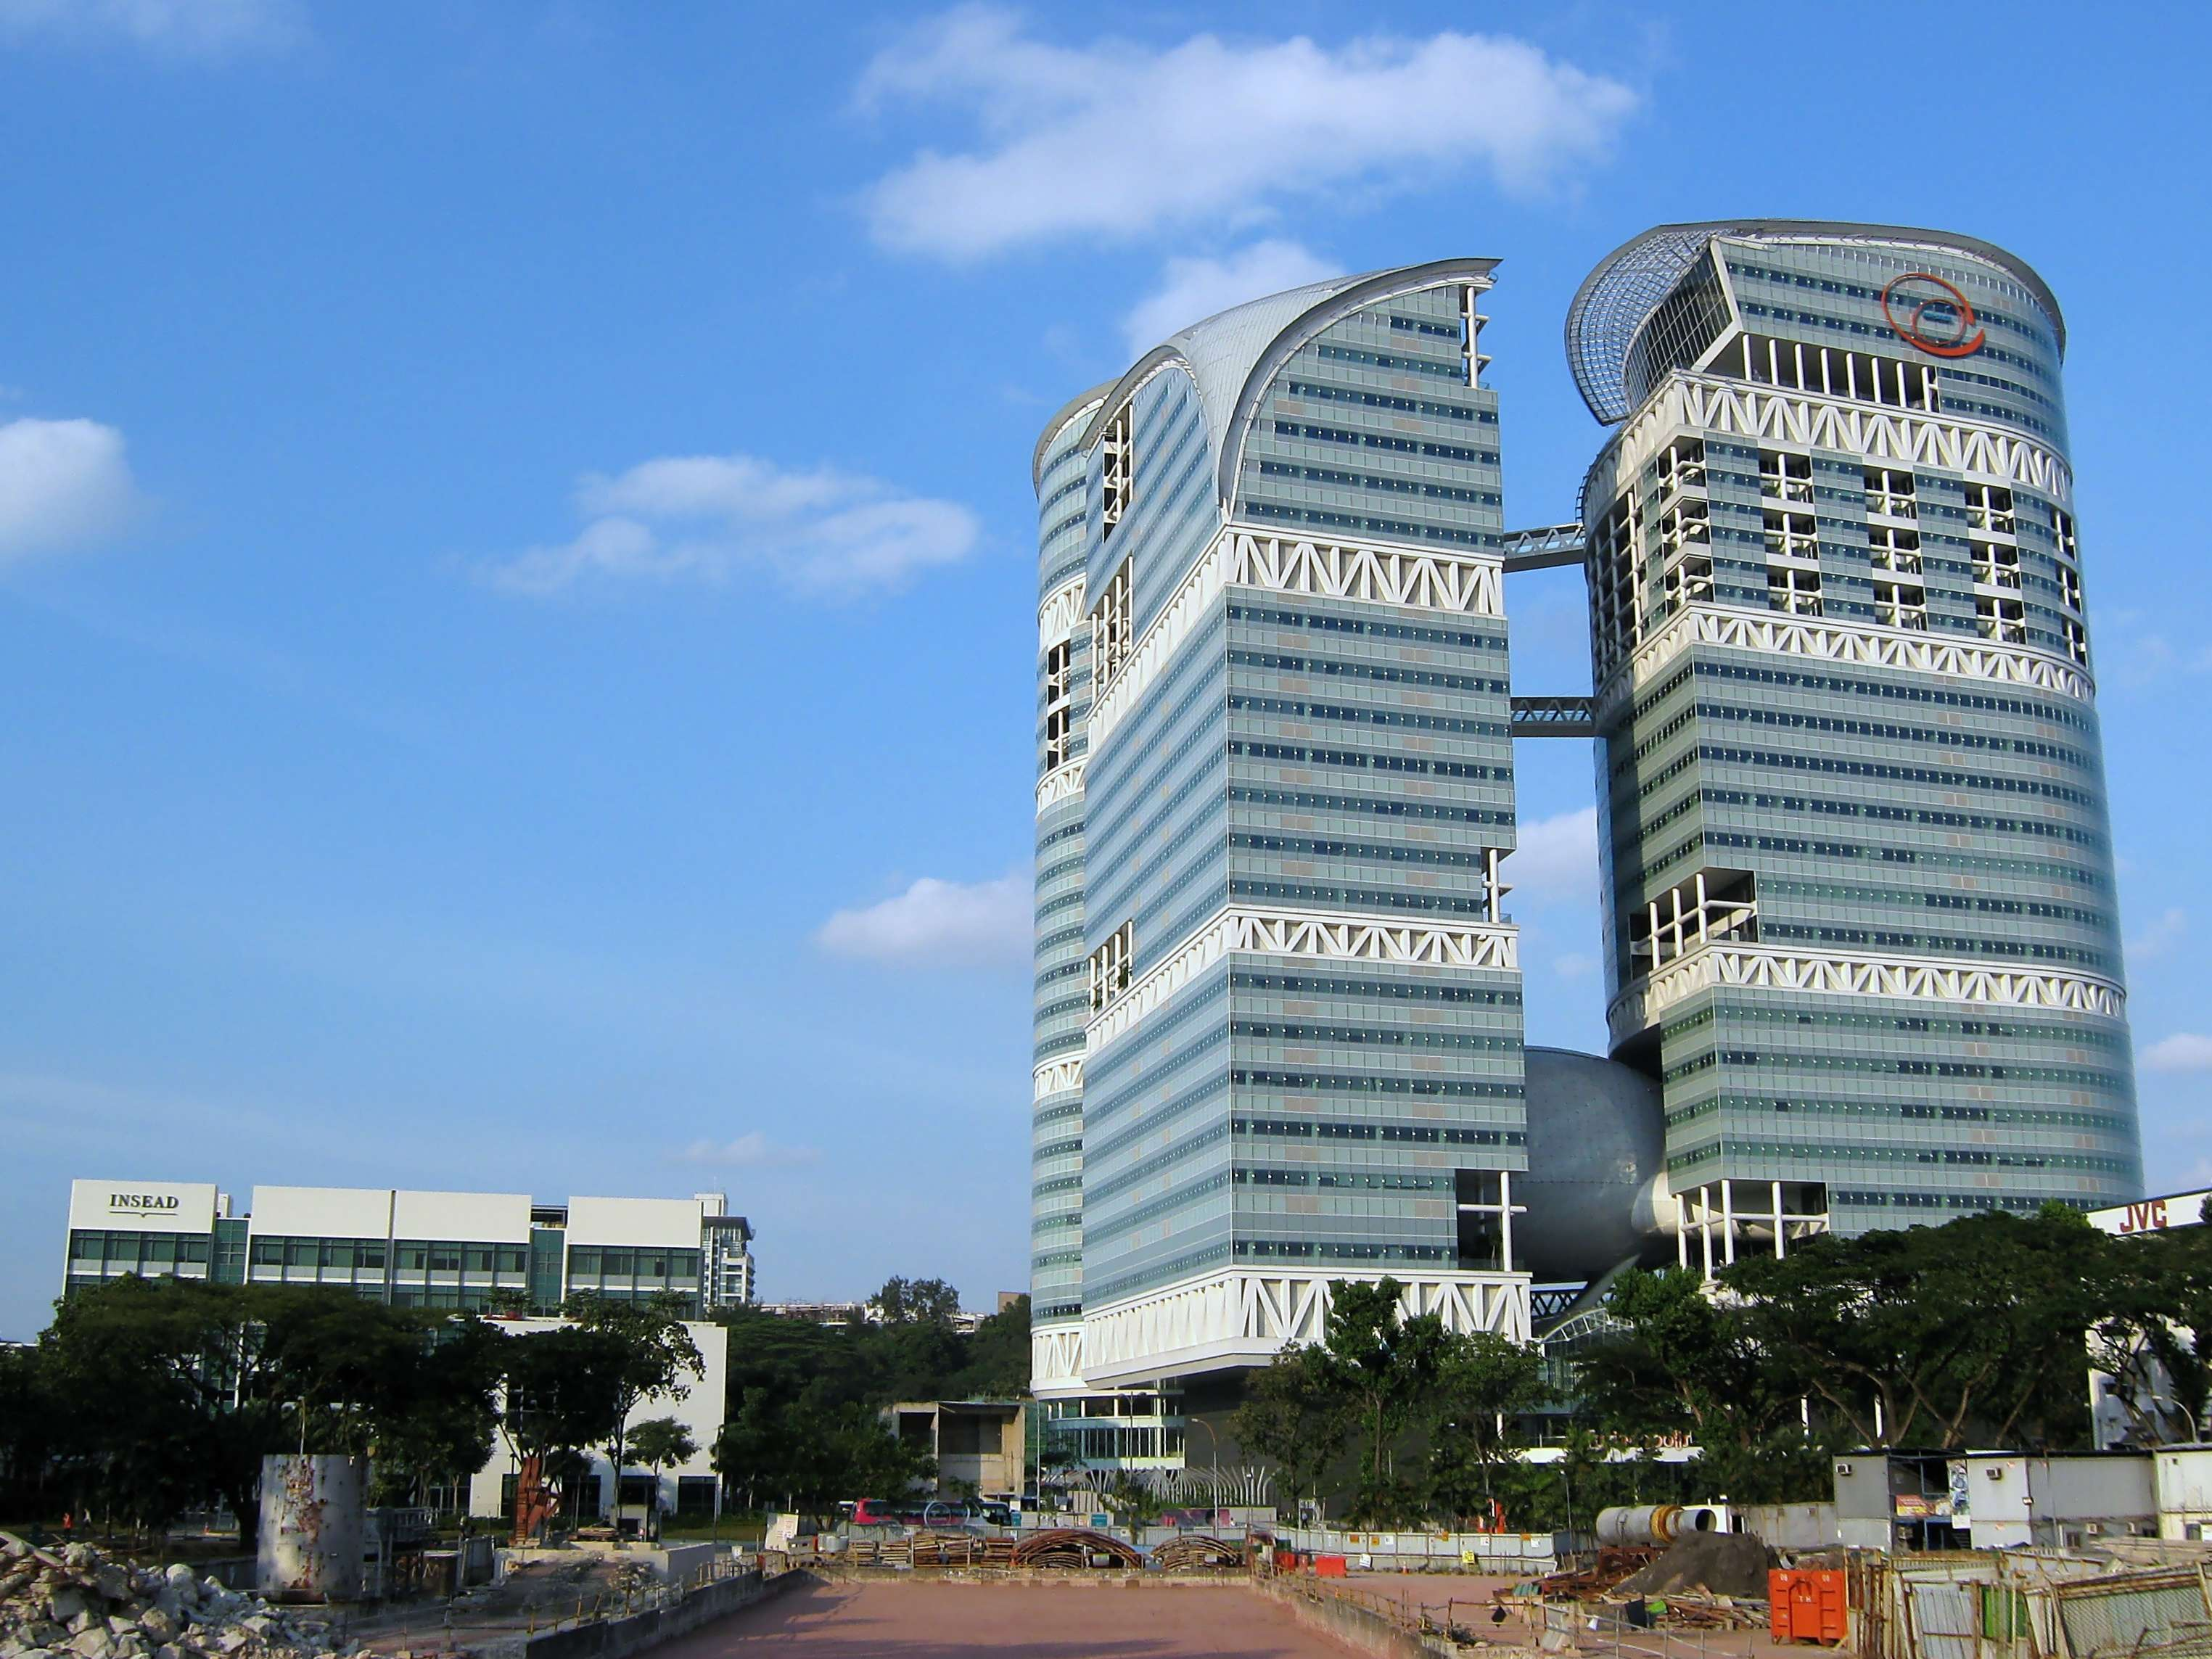 The Fusionopolis building at One North in Buona Vista, Singapore. Kok Leng Yeo/Wikimedia Commons